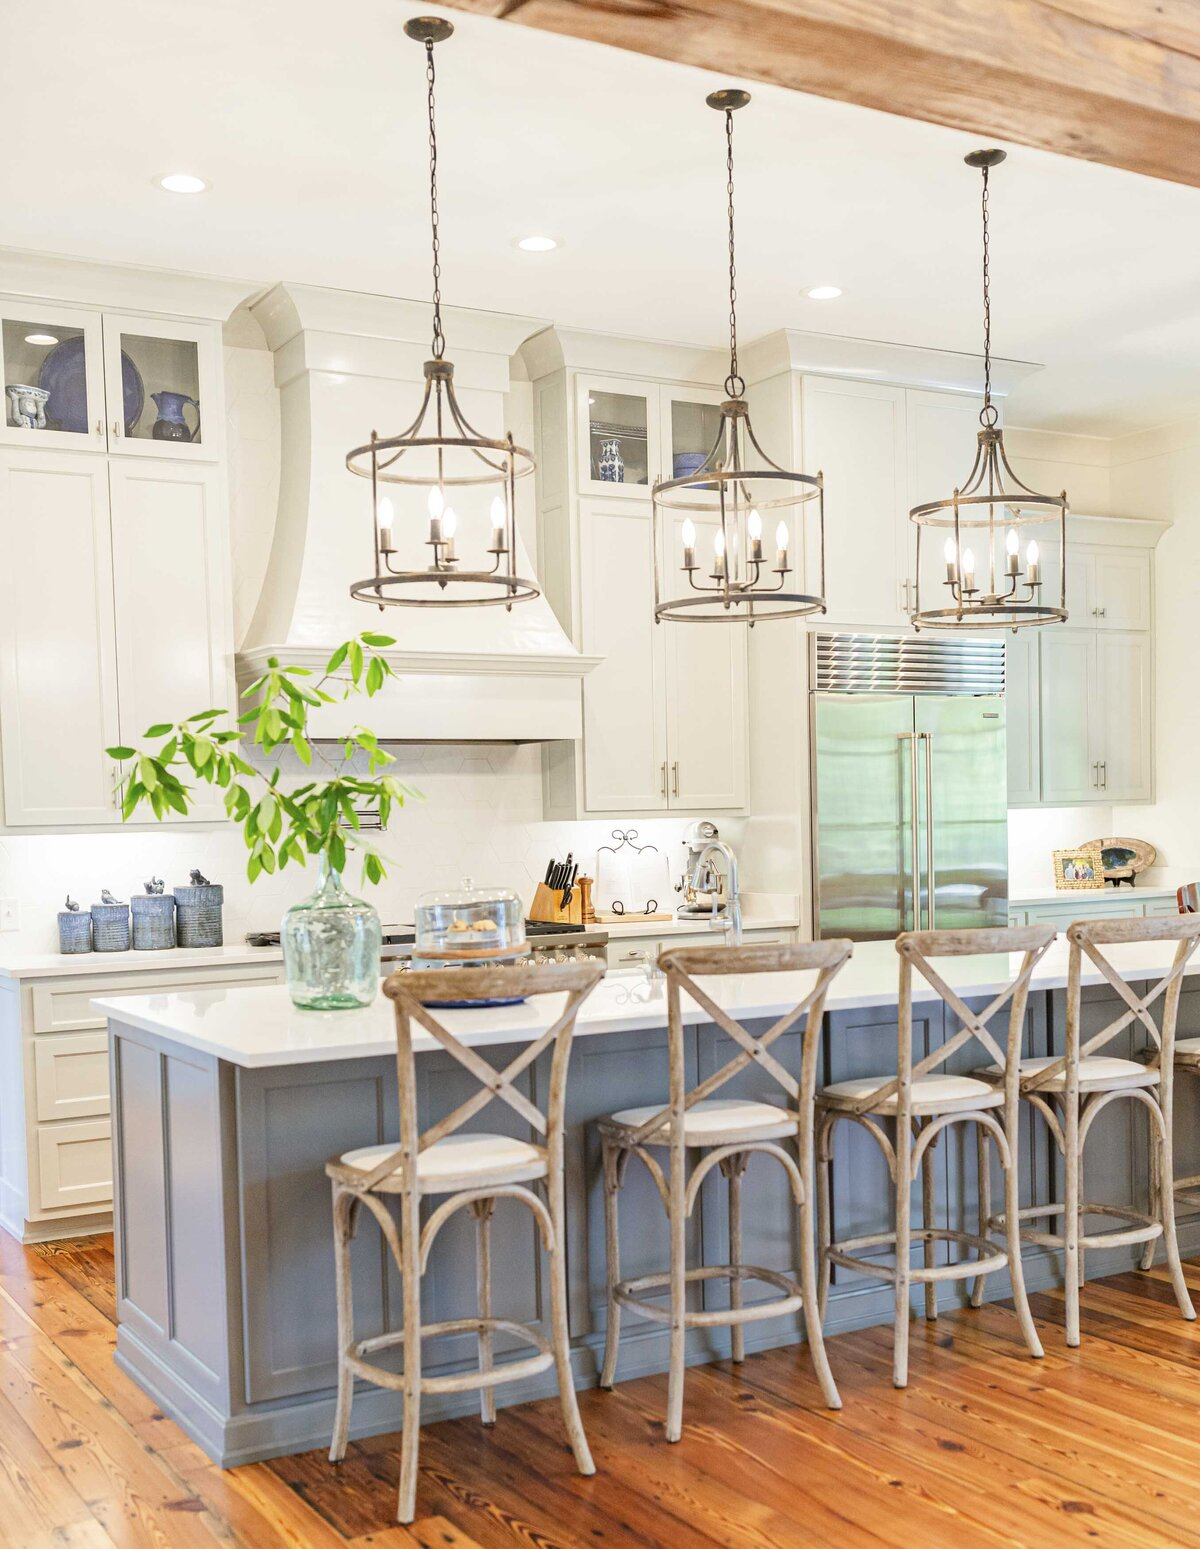 slate-blue-kitchen-island-renovation-by-moda7